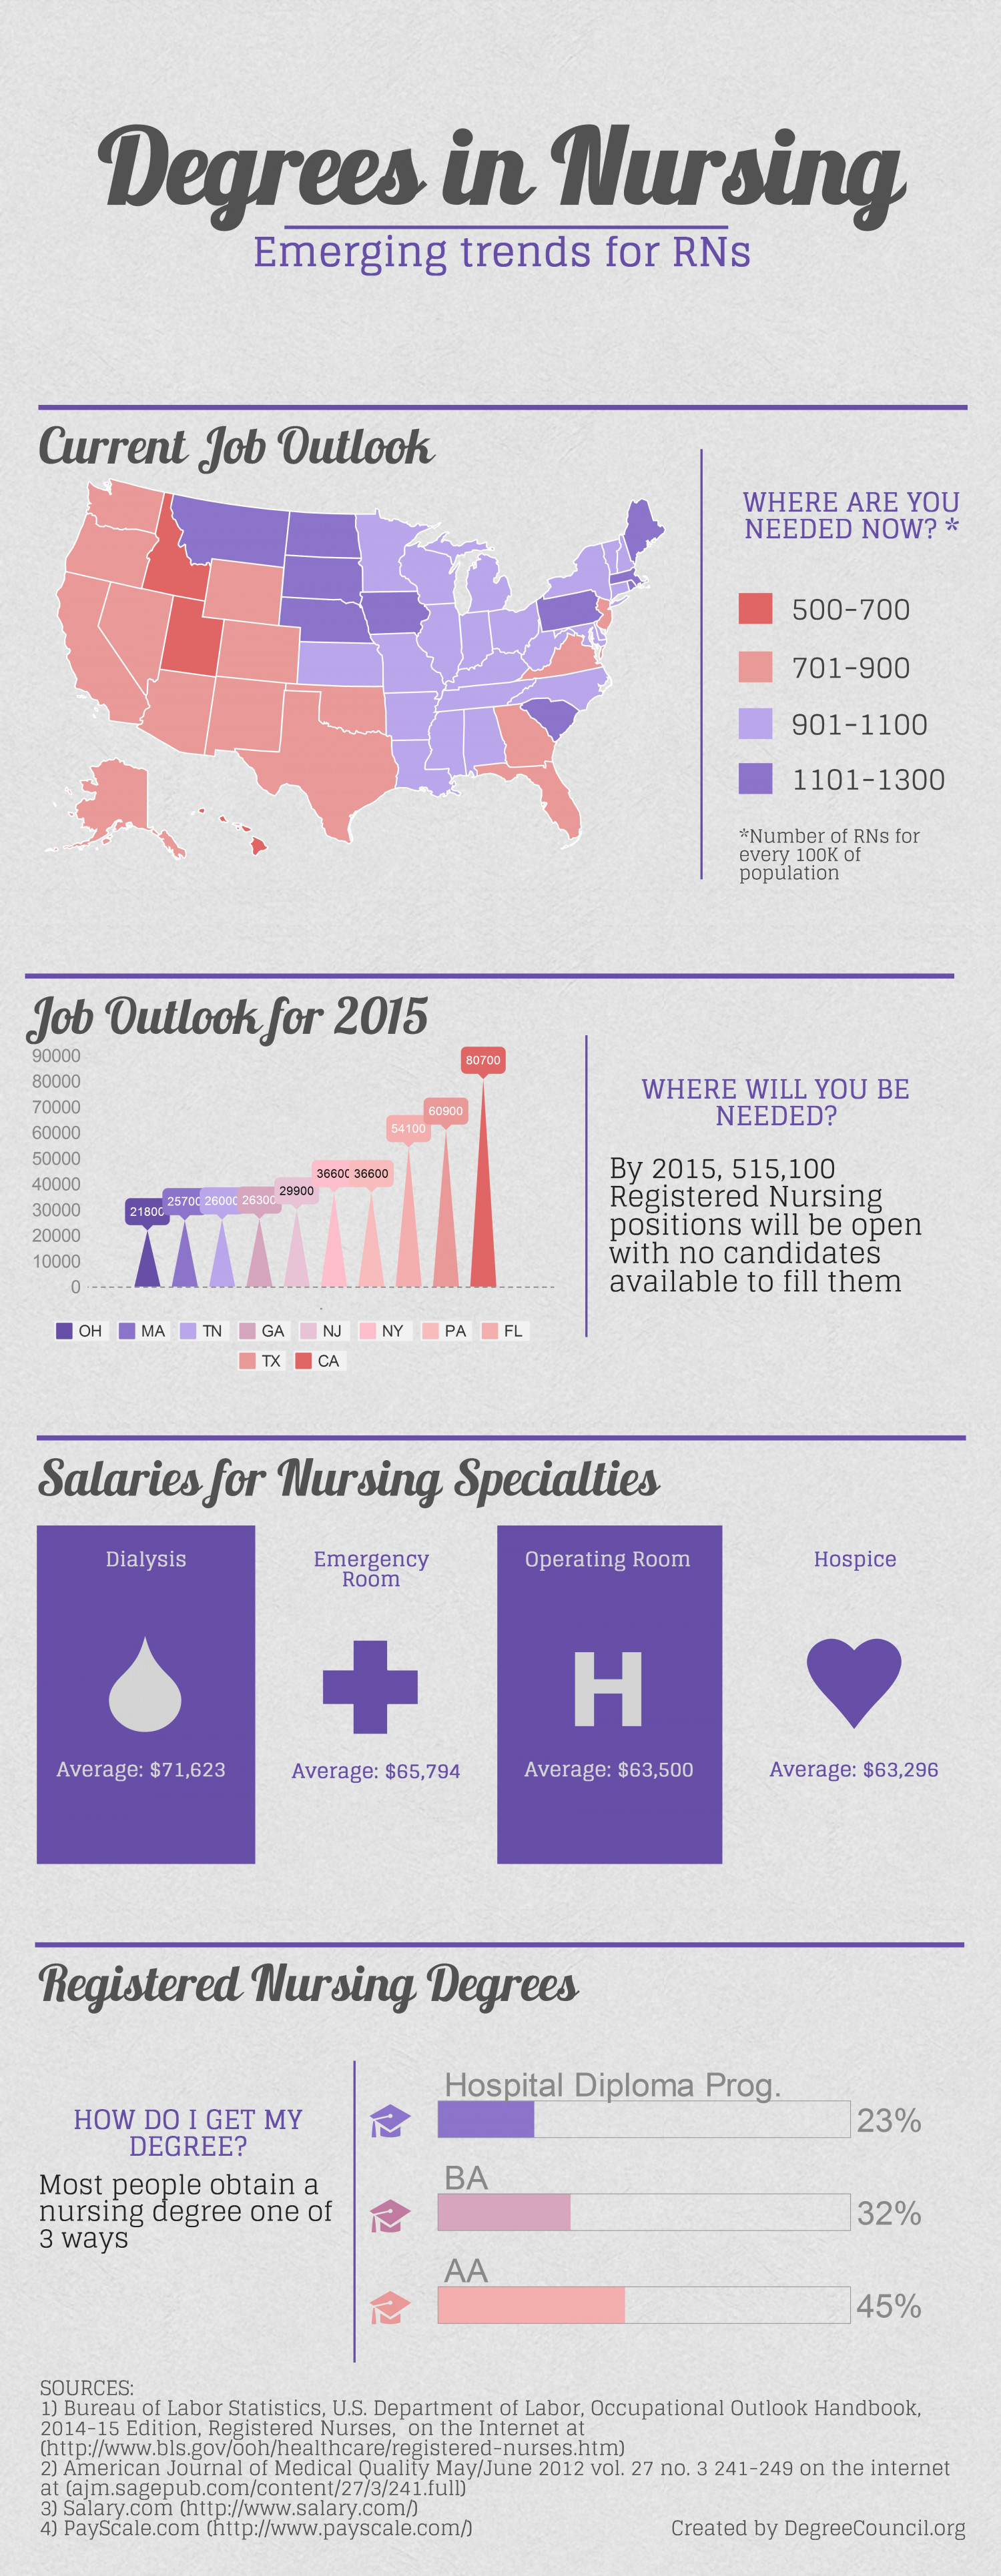 Degrees In Nursing - Emerging Trends for RNs Infographic